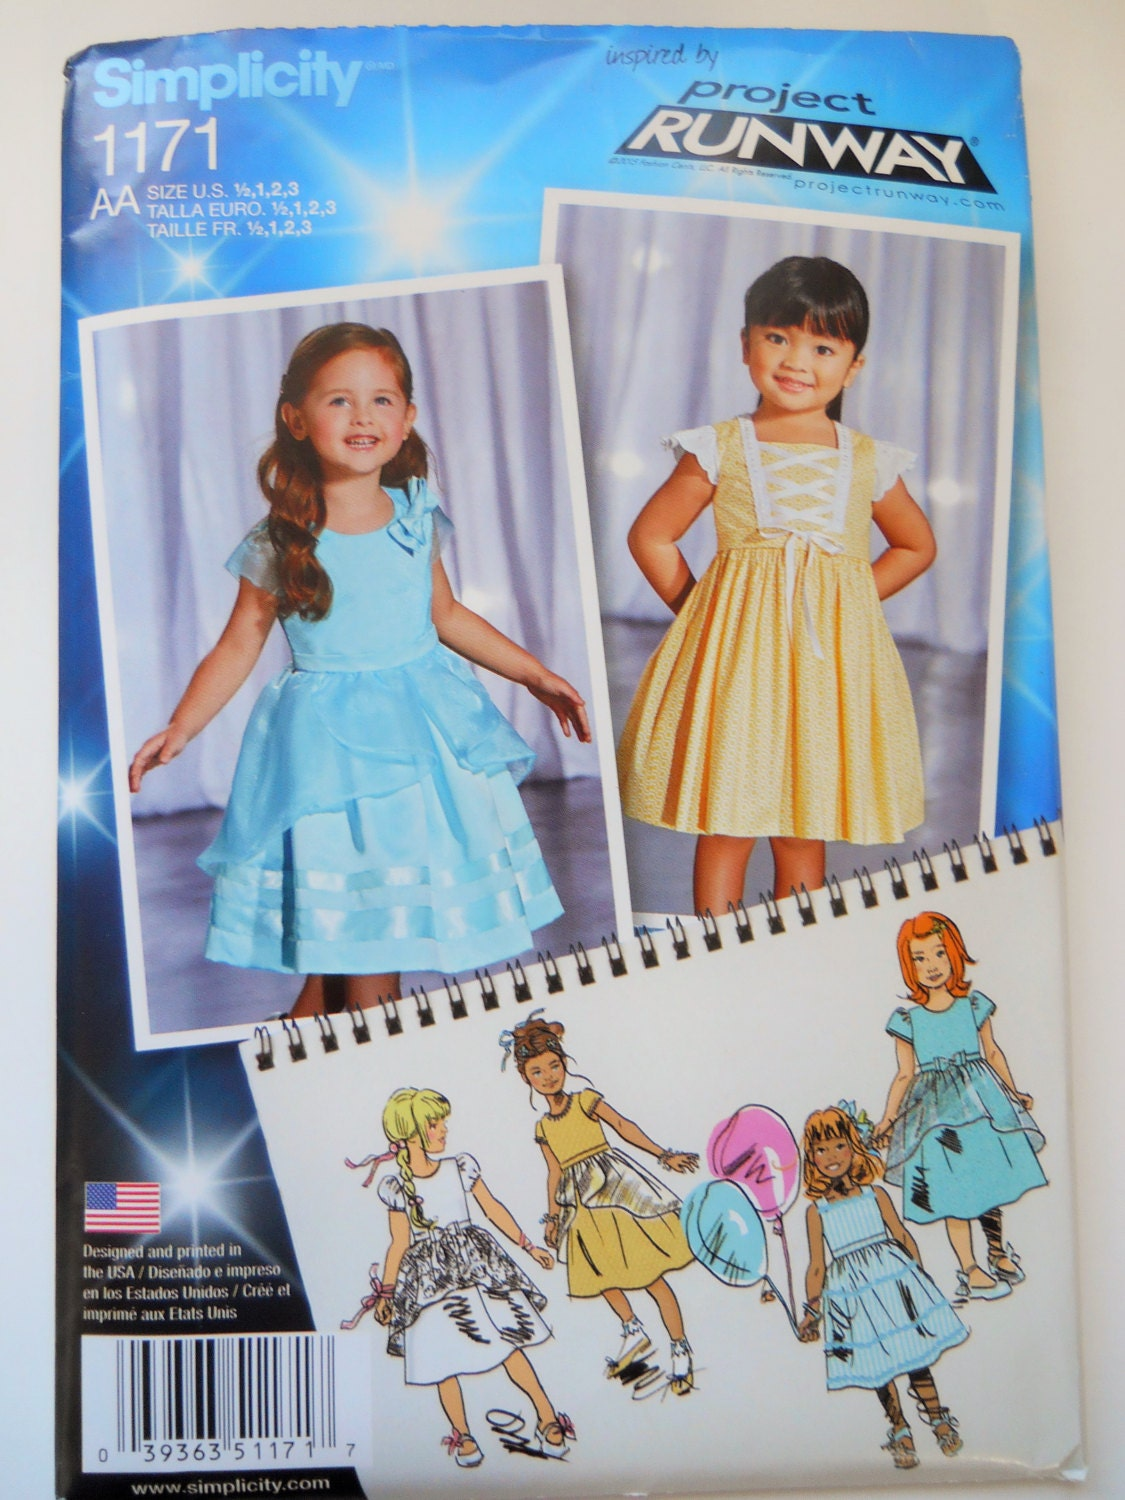 33108c164d1 Simplicity Sewing Pattern 1171 Project Runway Toddler's Dress with  Variations in Size 1/2-3 Special Occasion Dress